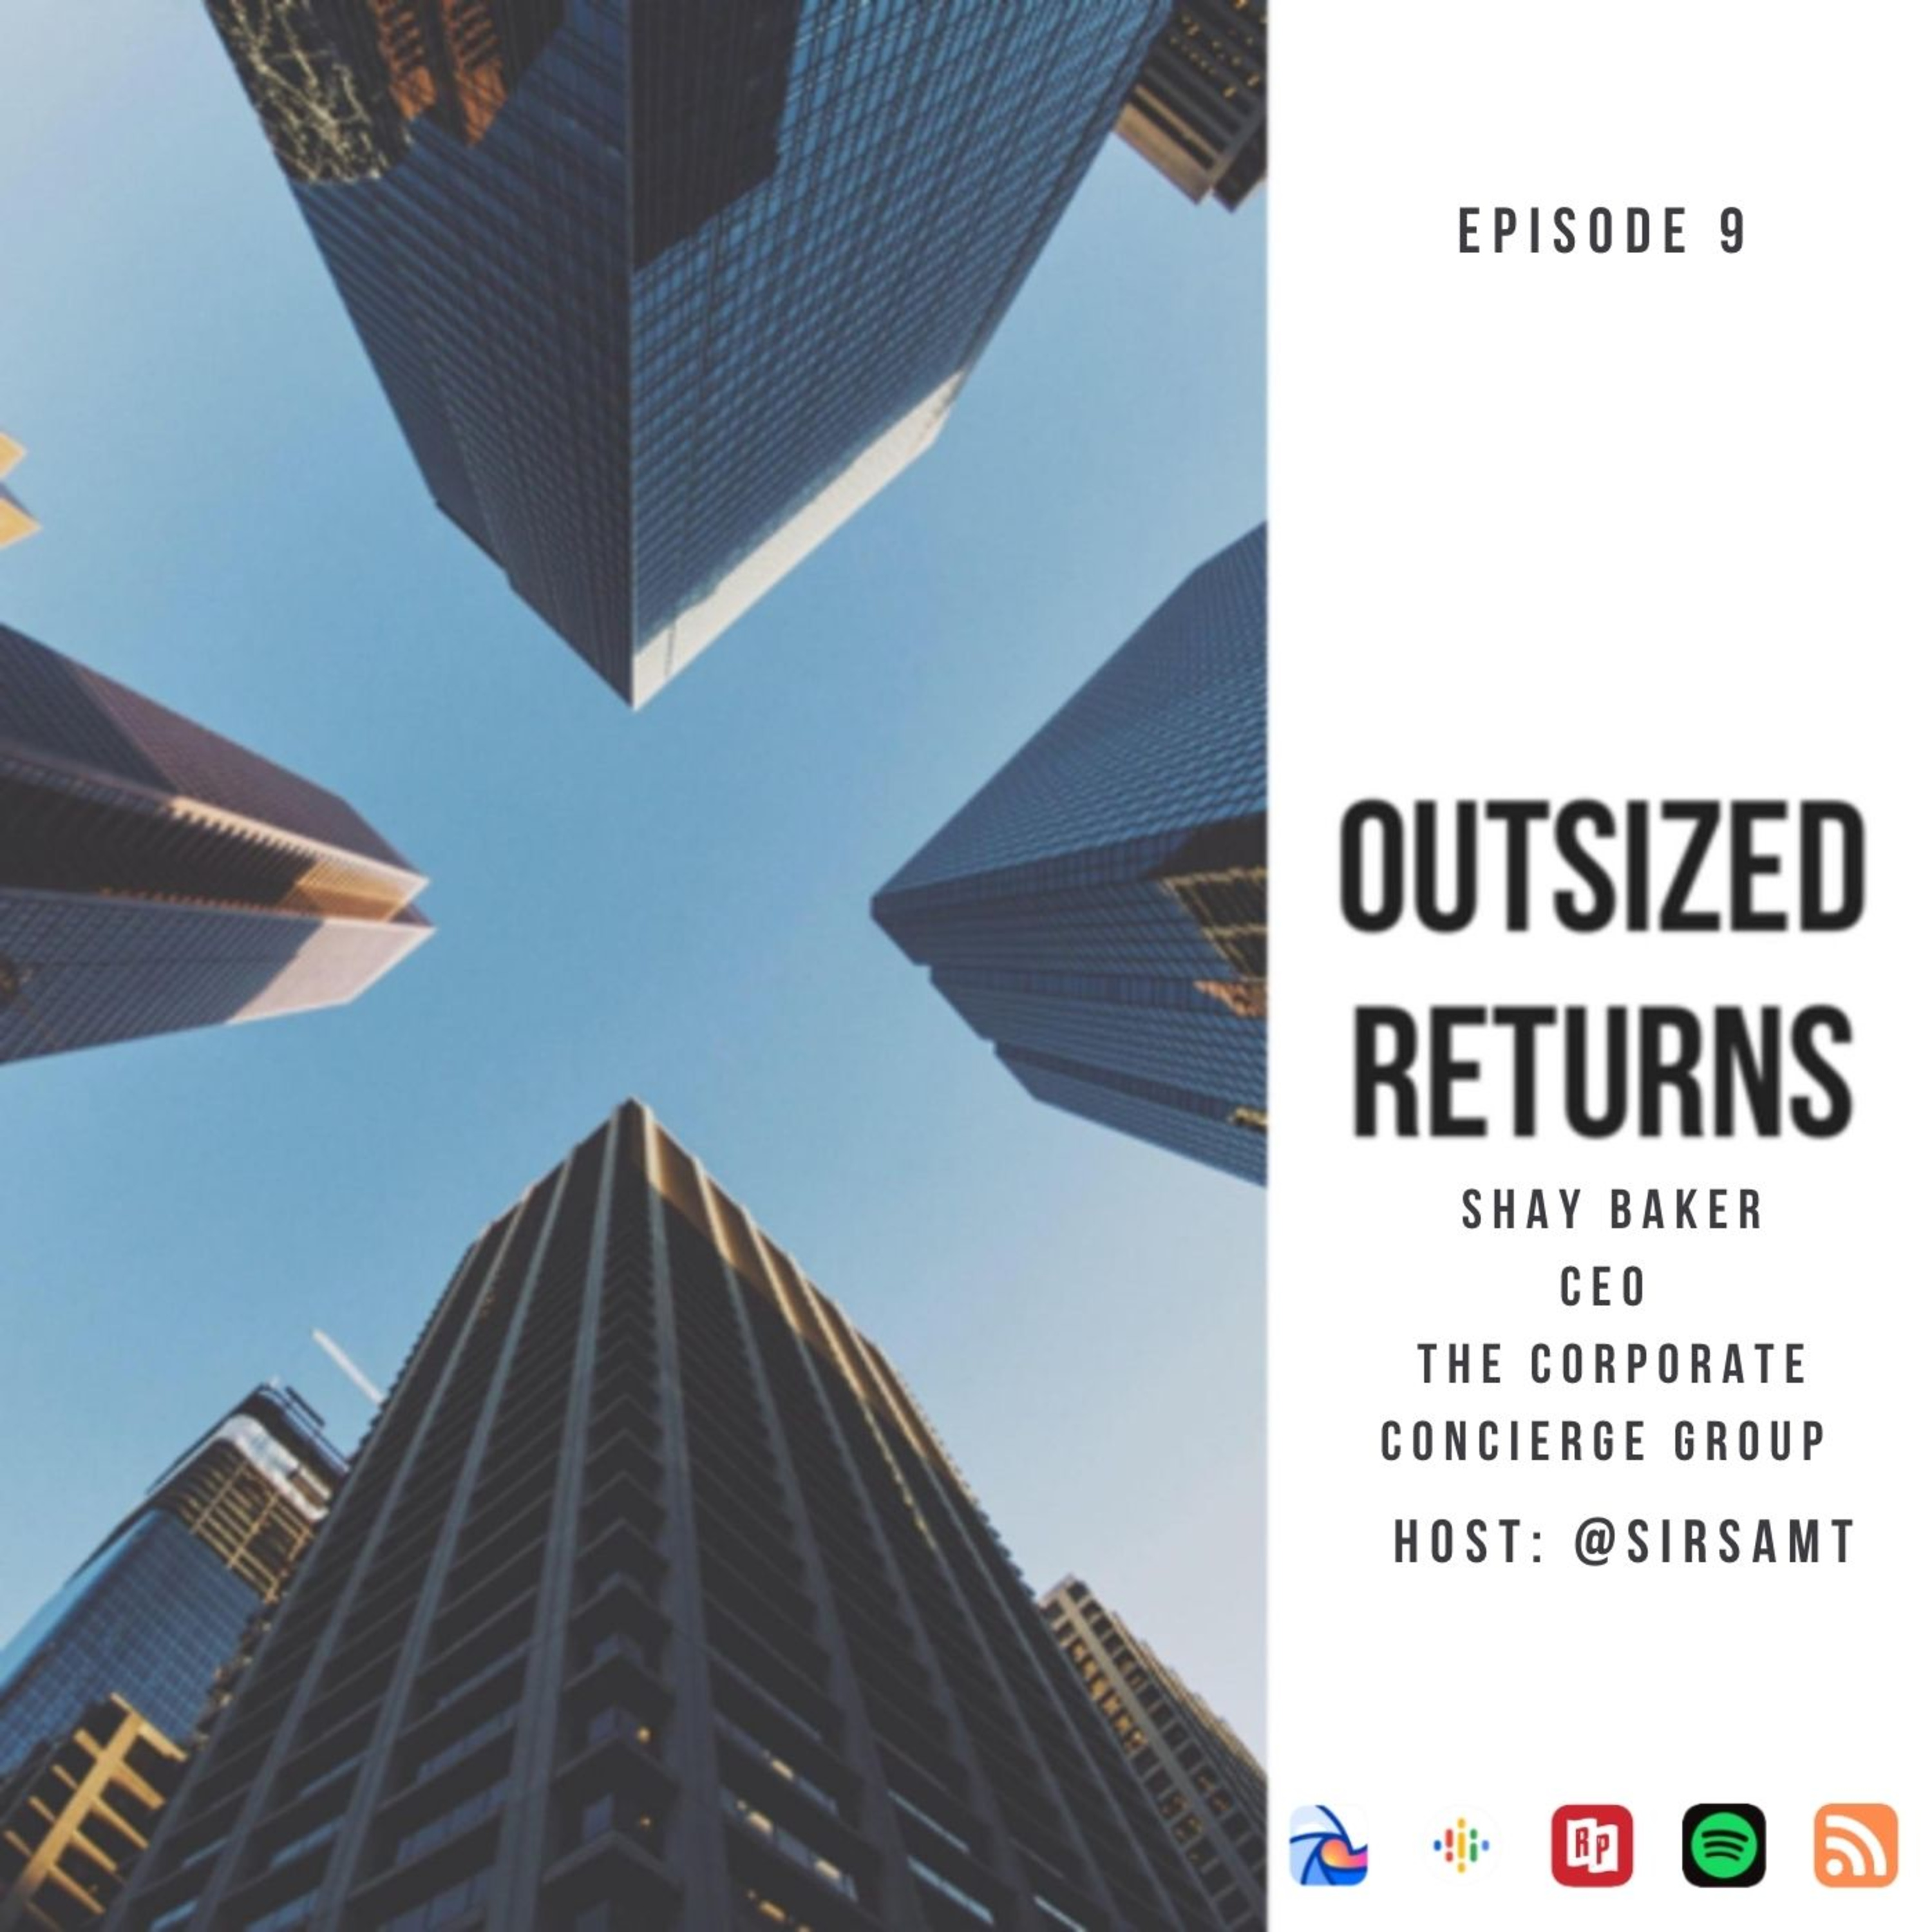 Outsized Returns E09 - Shay Baker of The Corporate Concierge Group